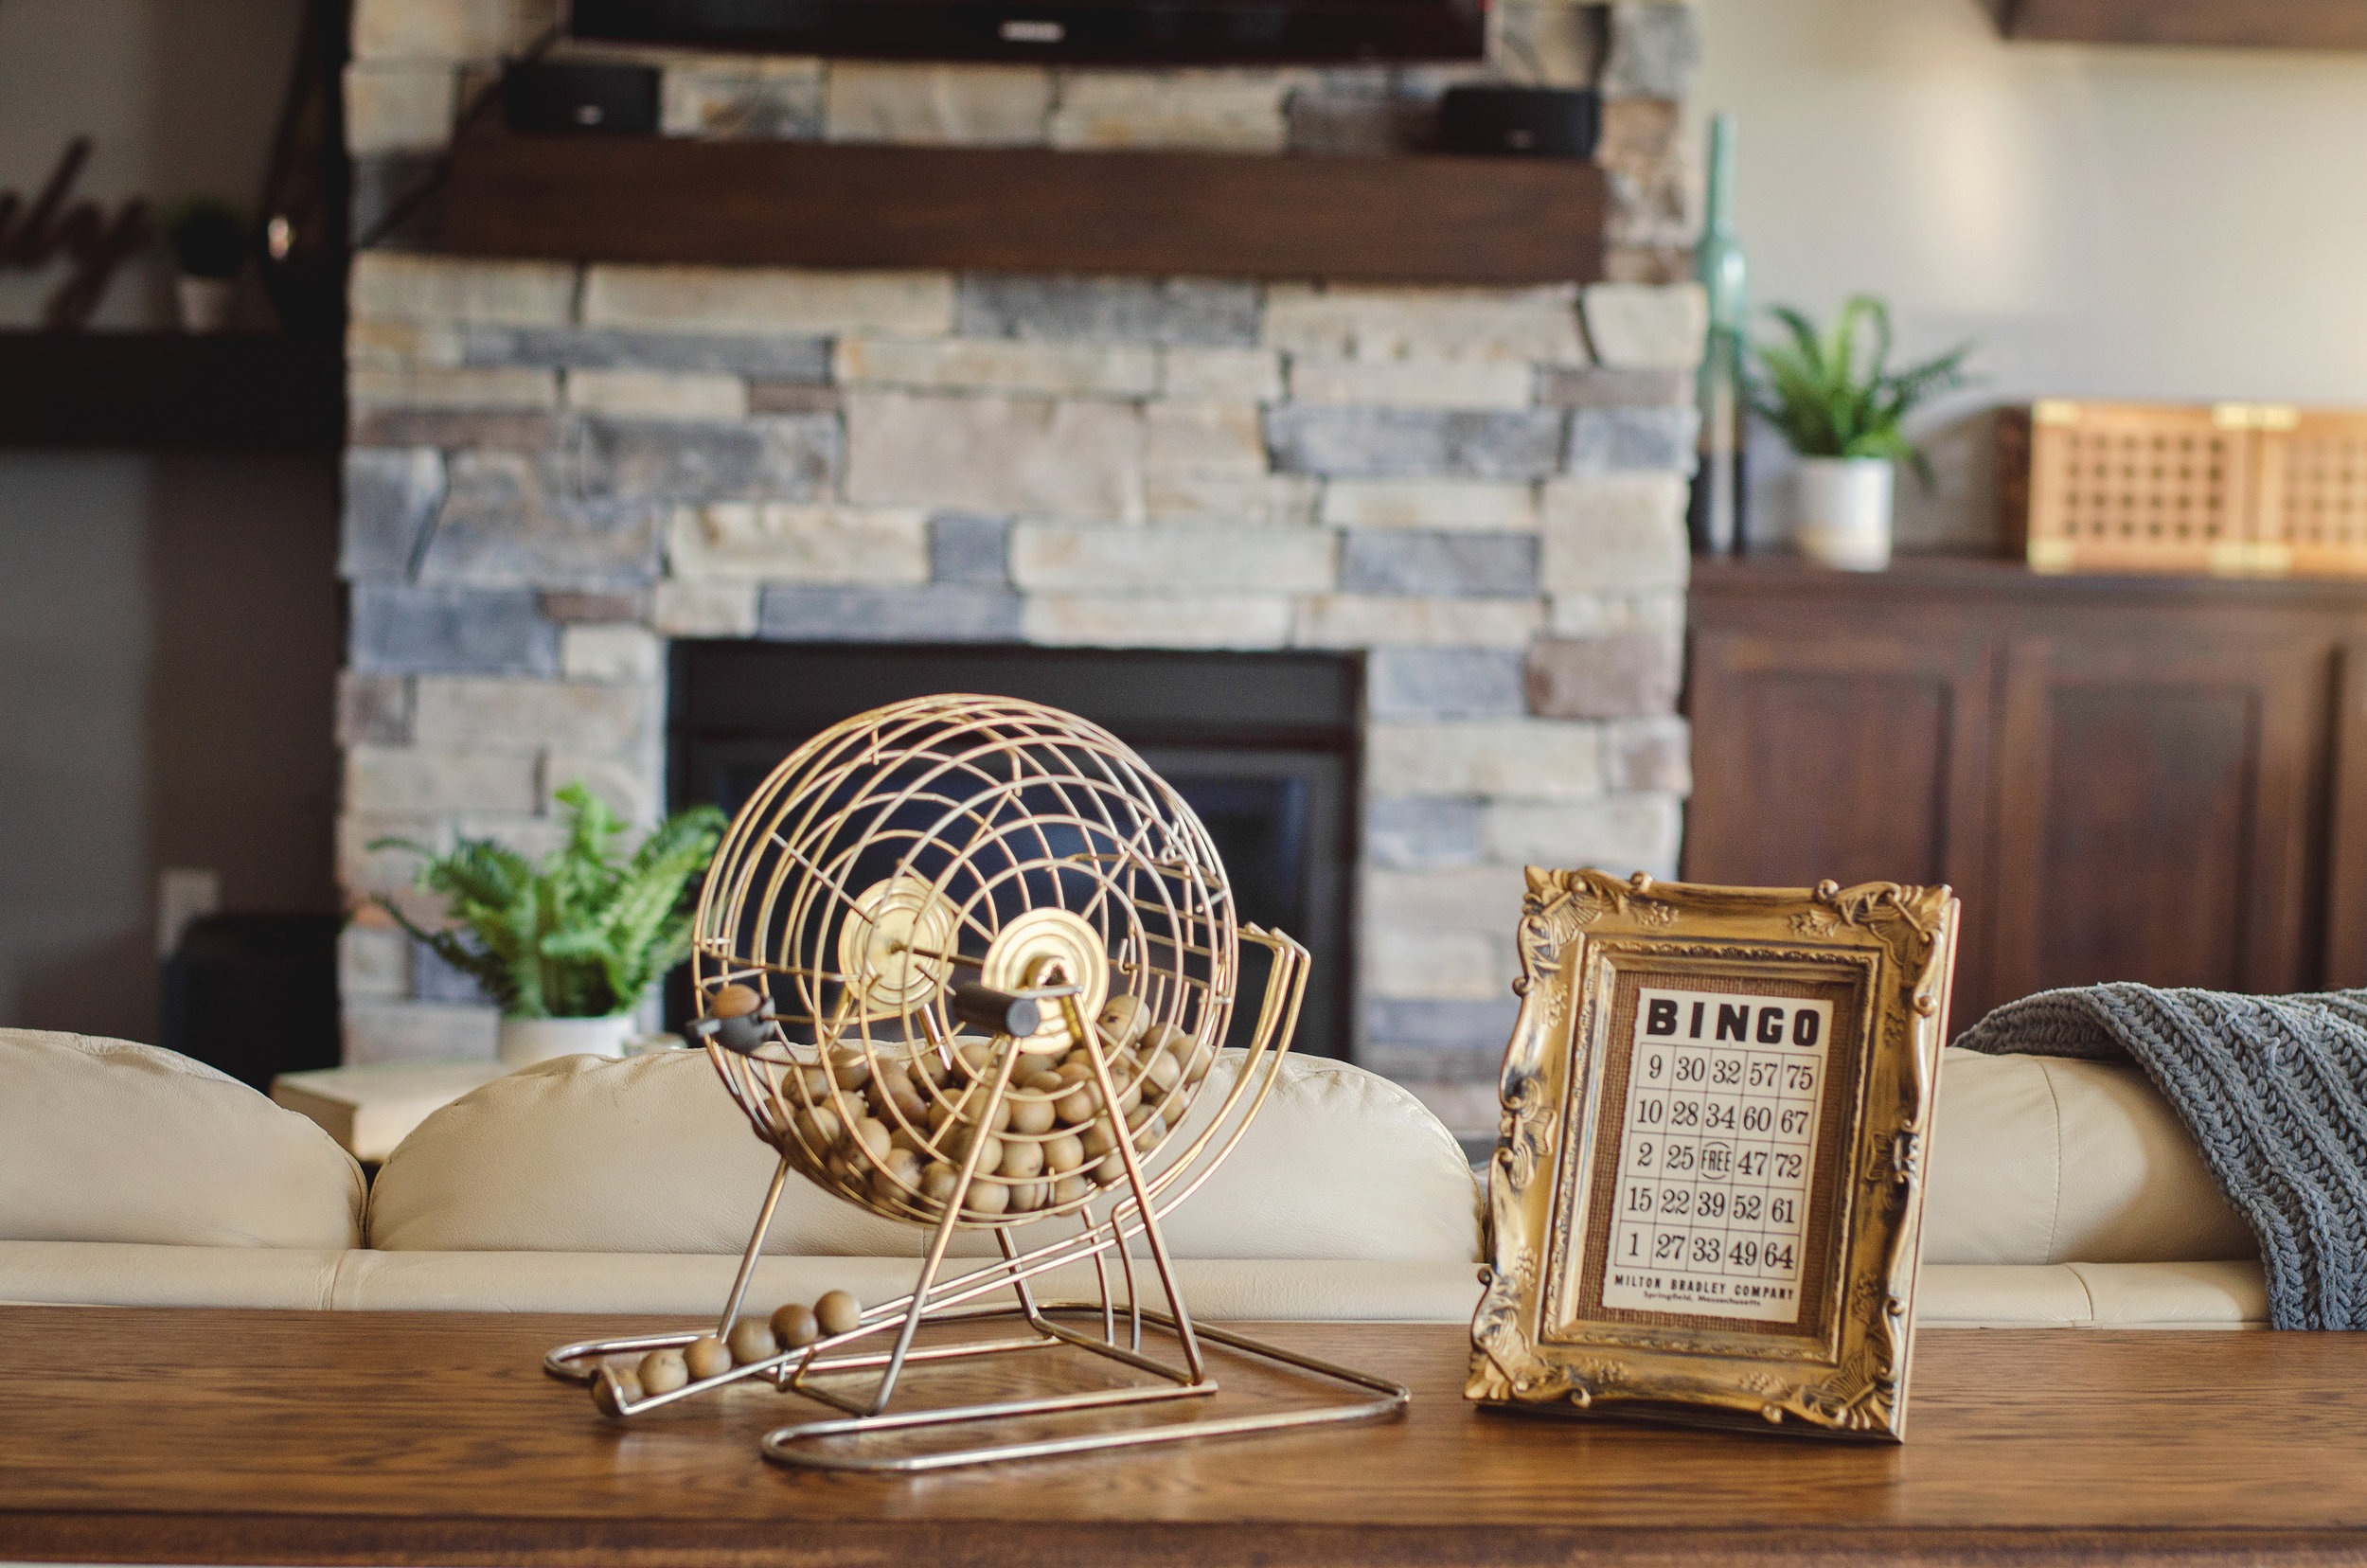 Bingo ball cage as home decor. | hprallandco.com